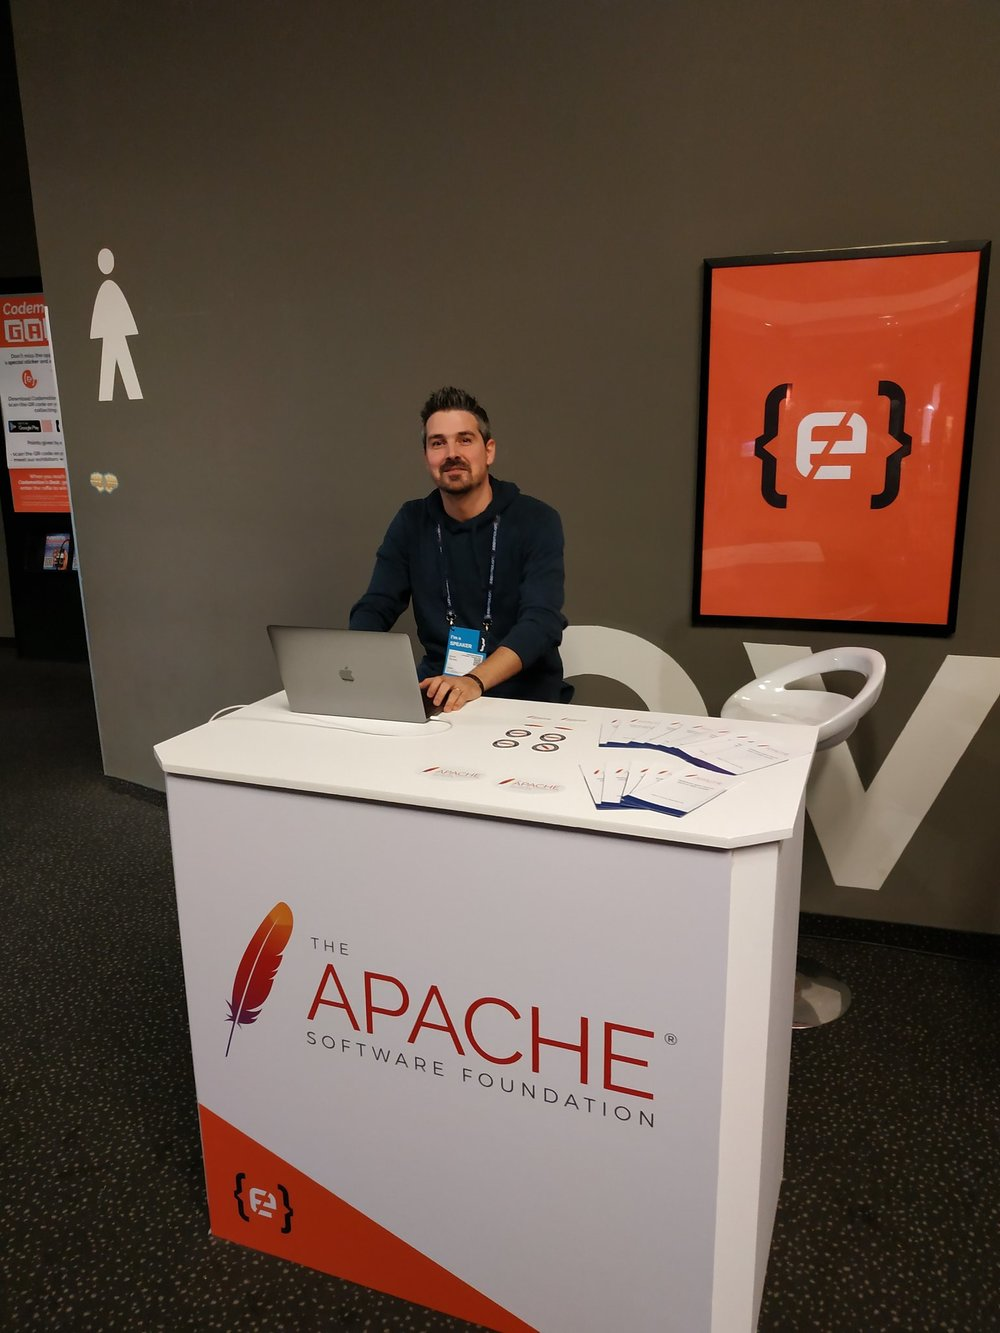 Ignasi at our ASF booth